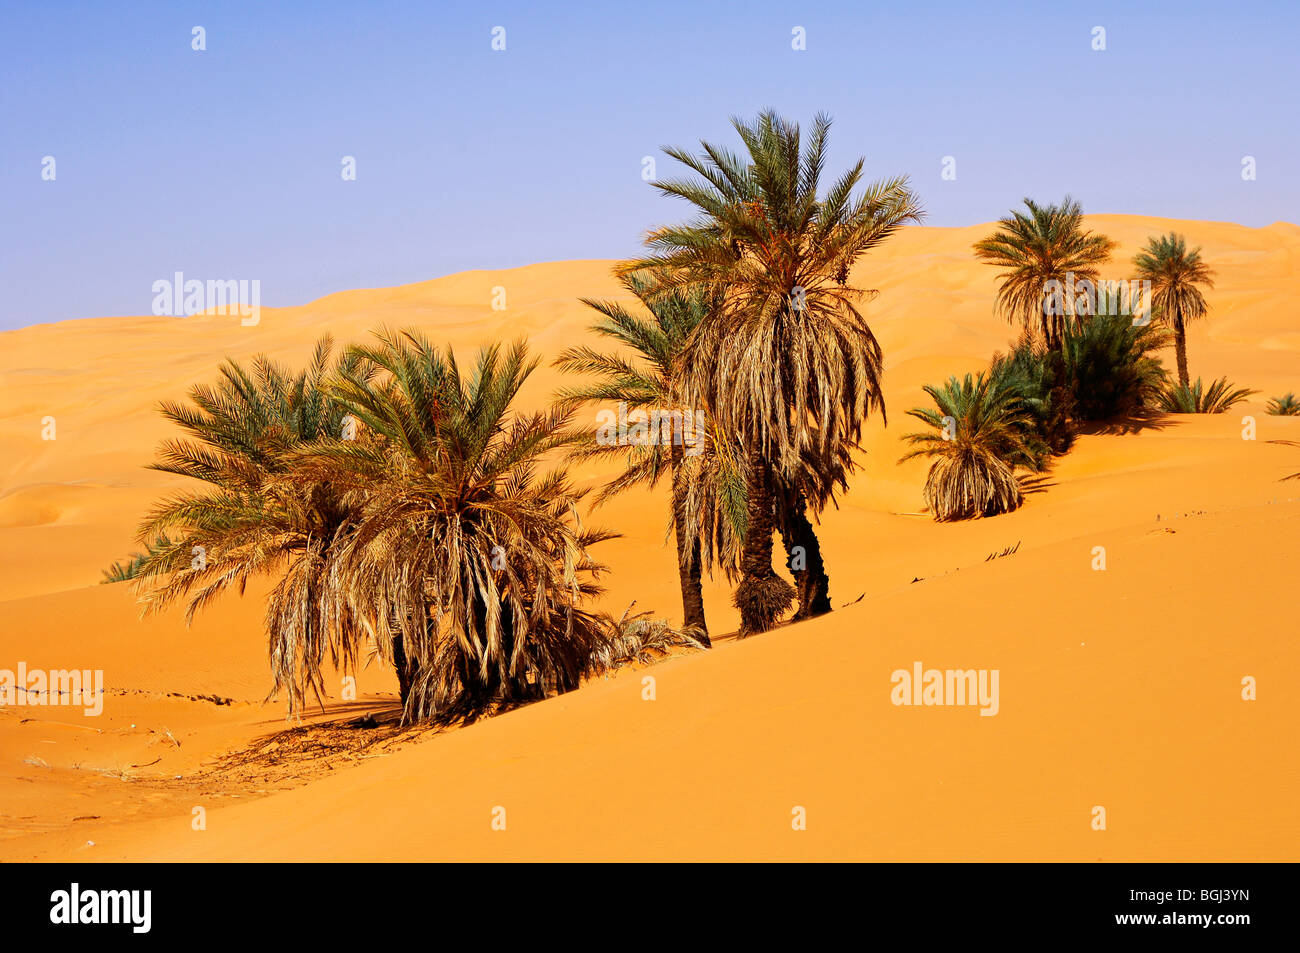 Date Palm Tree In Sahara Desert